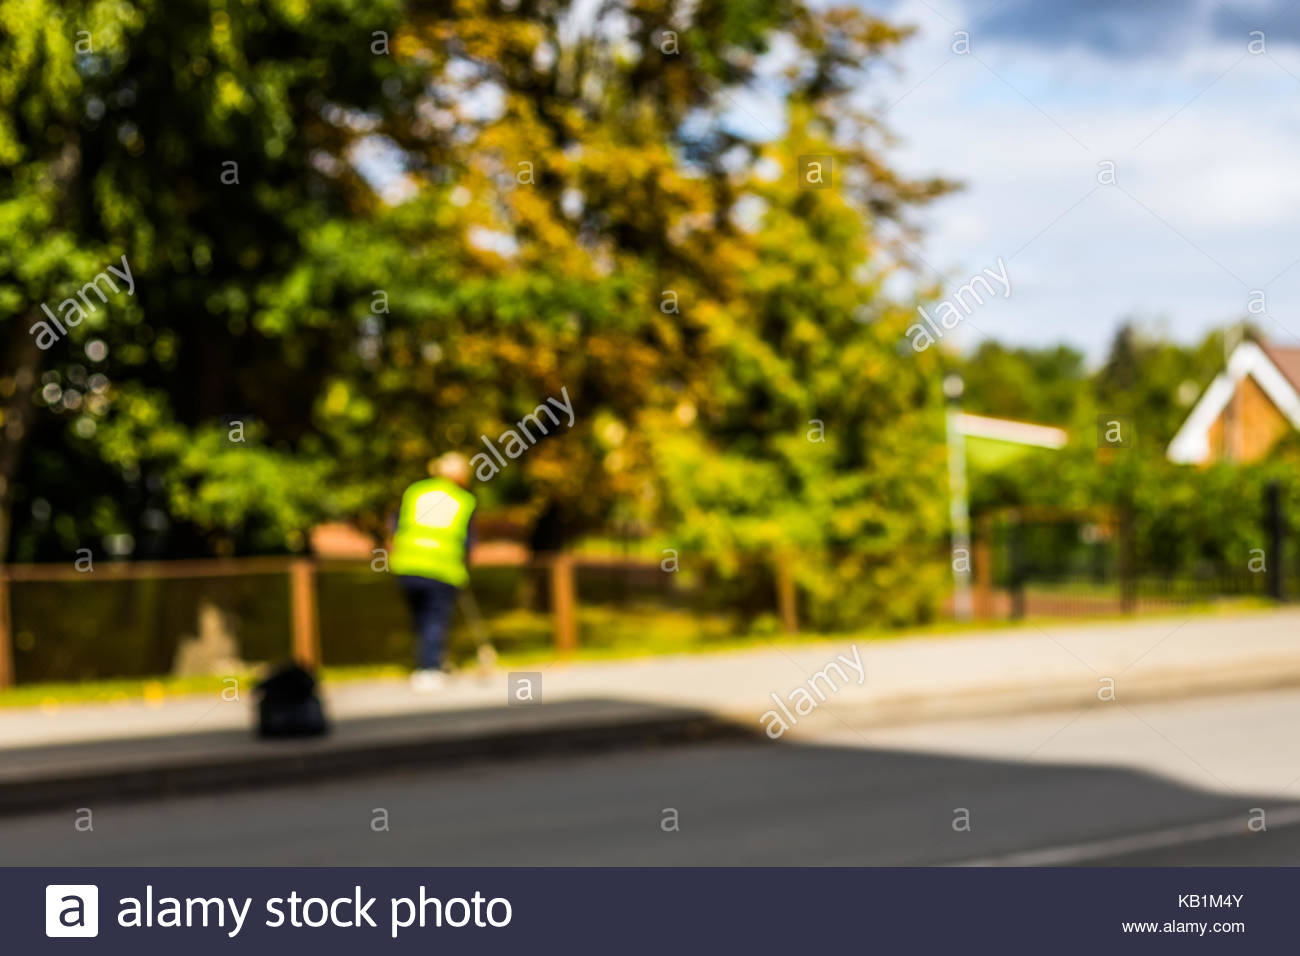 Abstract blurred background   road sweeper worker cleaning city 1300x956